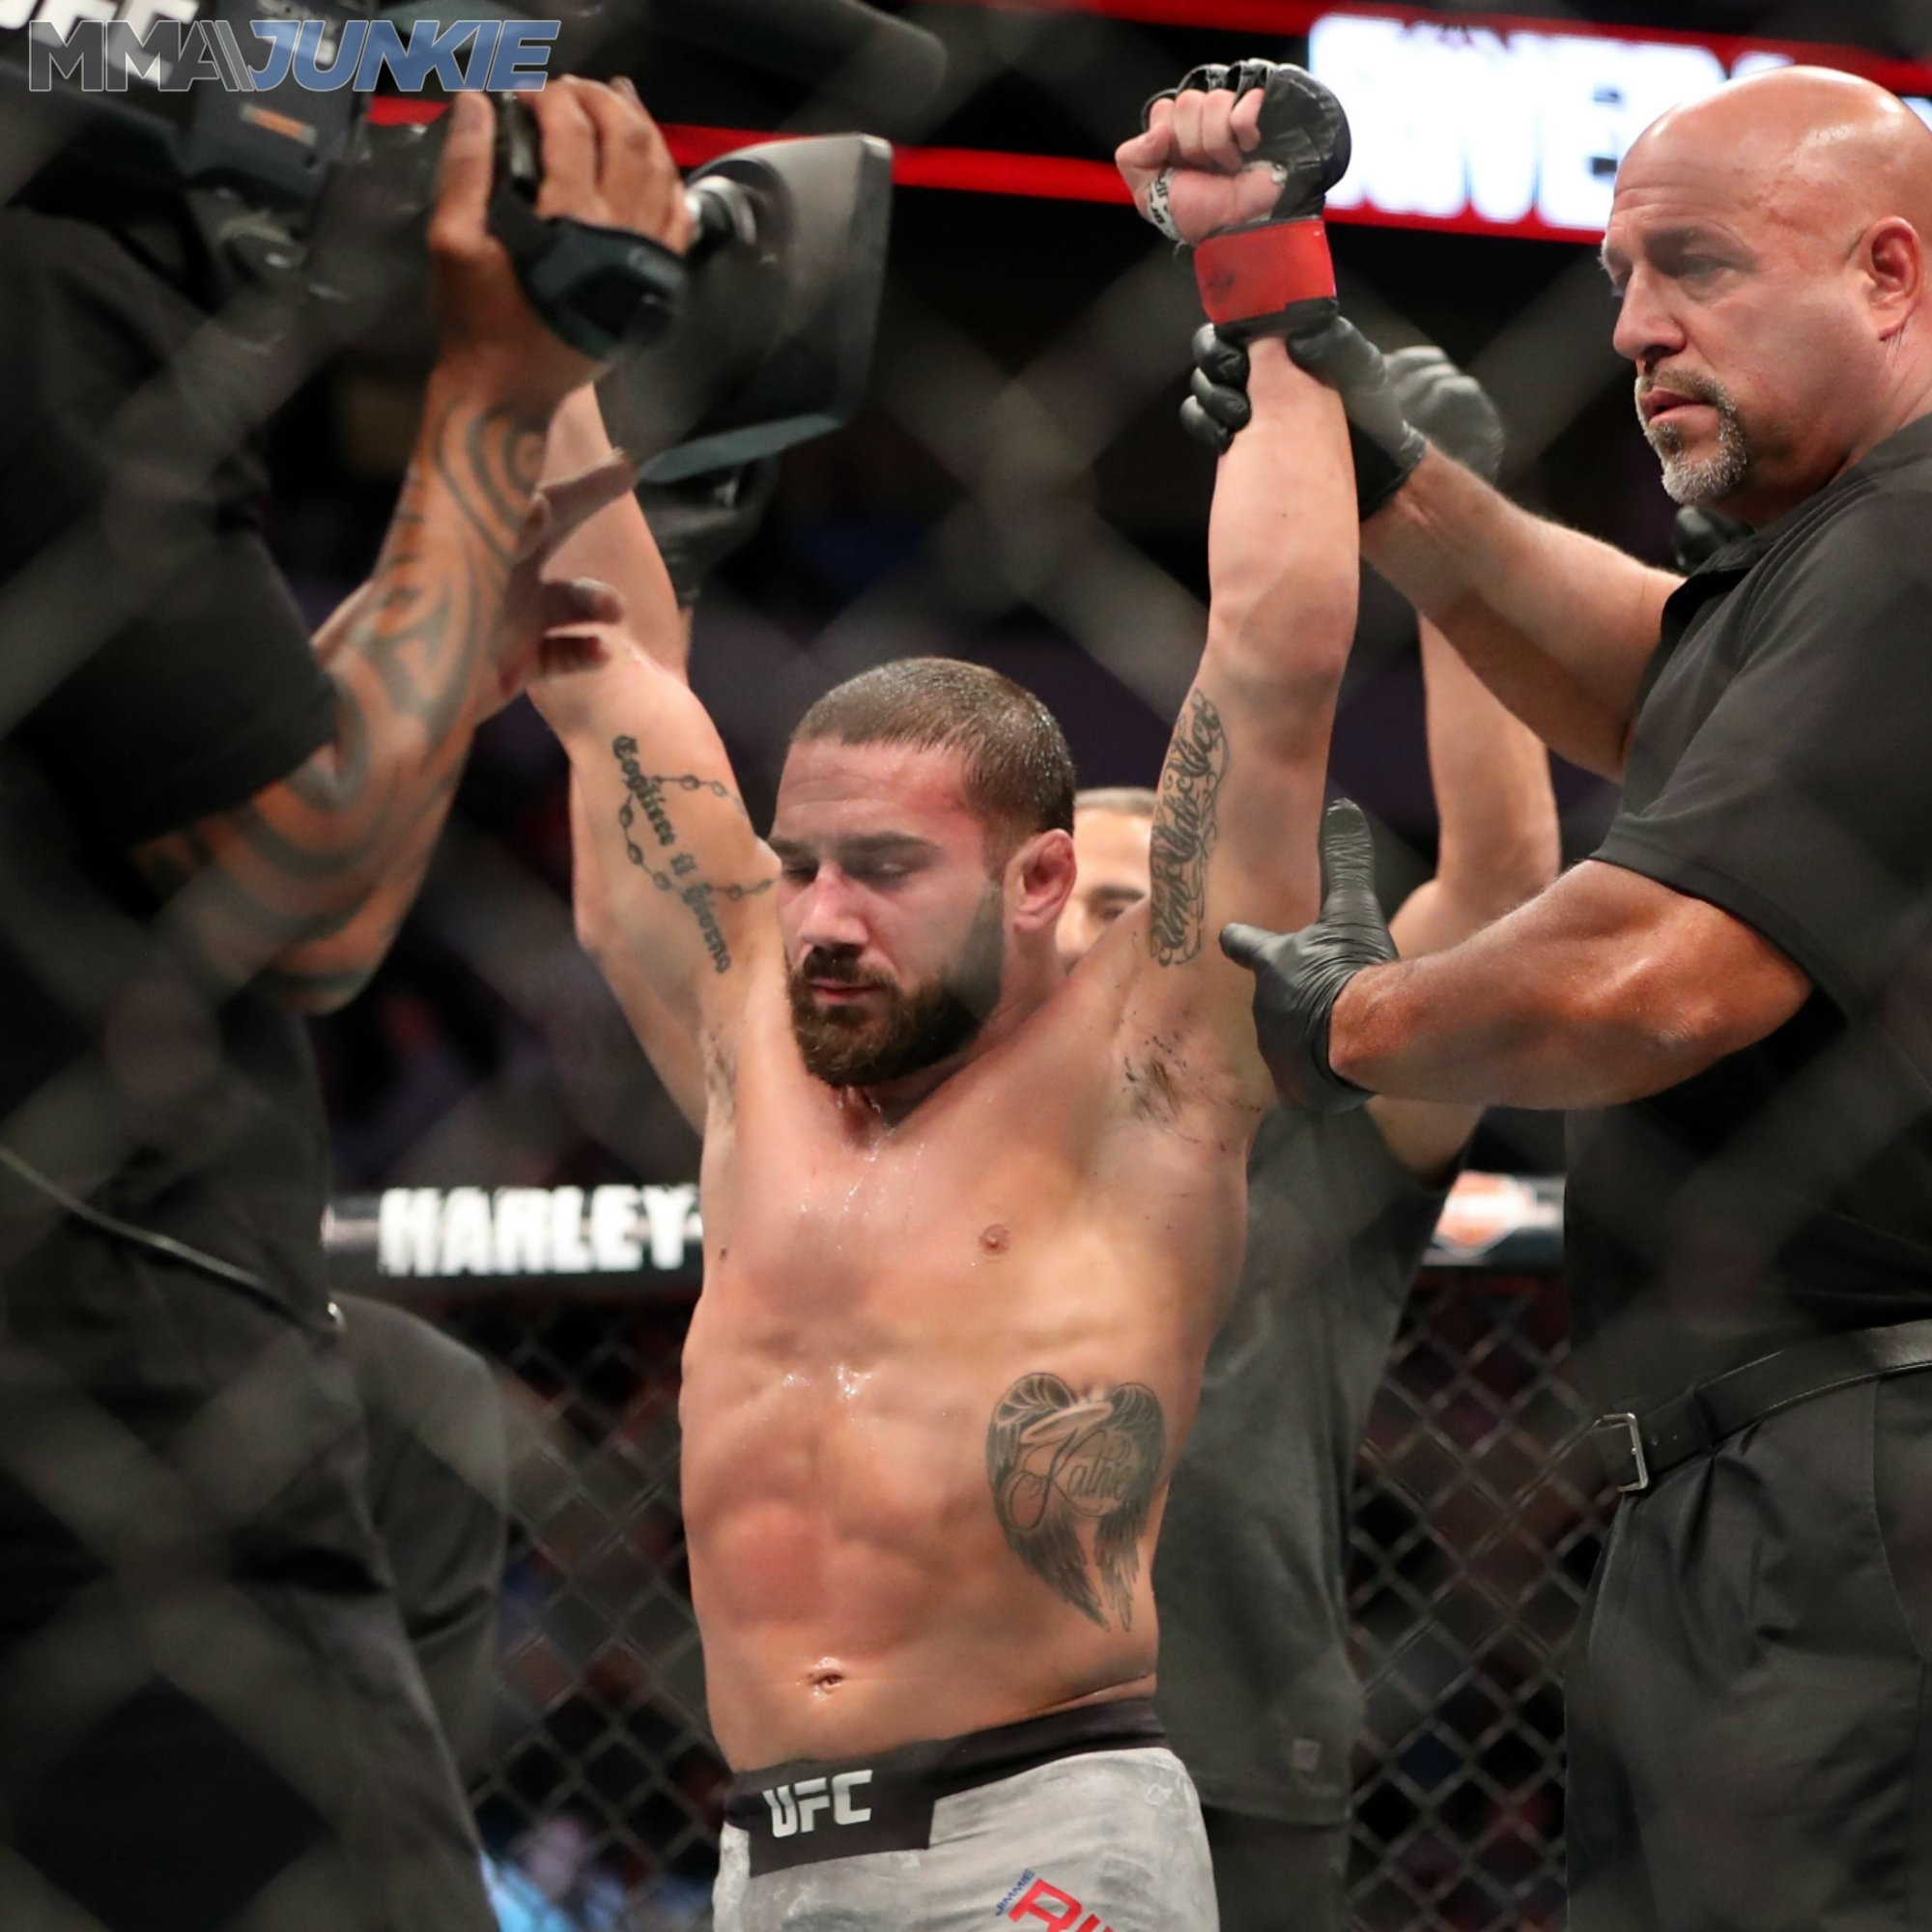 UFC 228 Results - Jimmie Rivera defeated John Dodson via Unanimous Decision - defeated